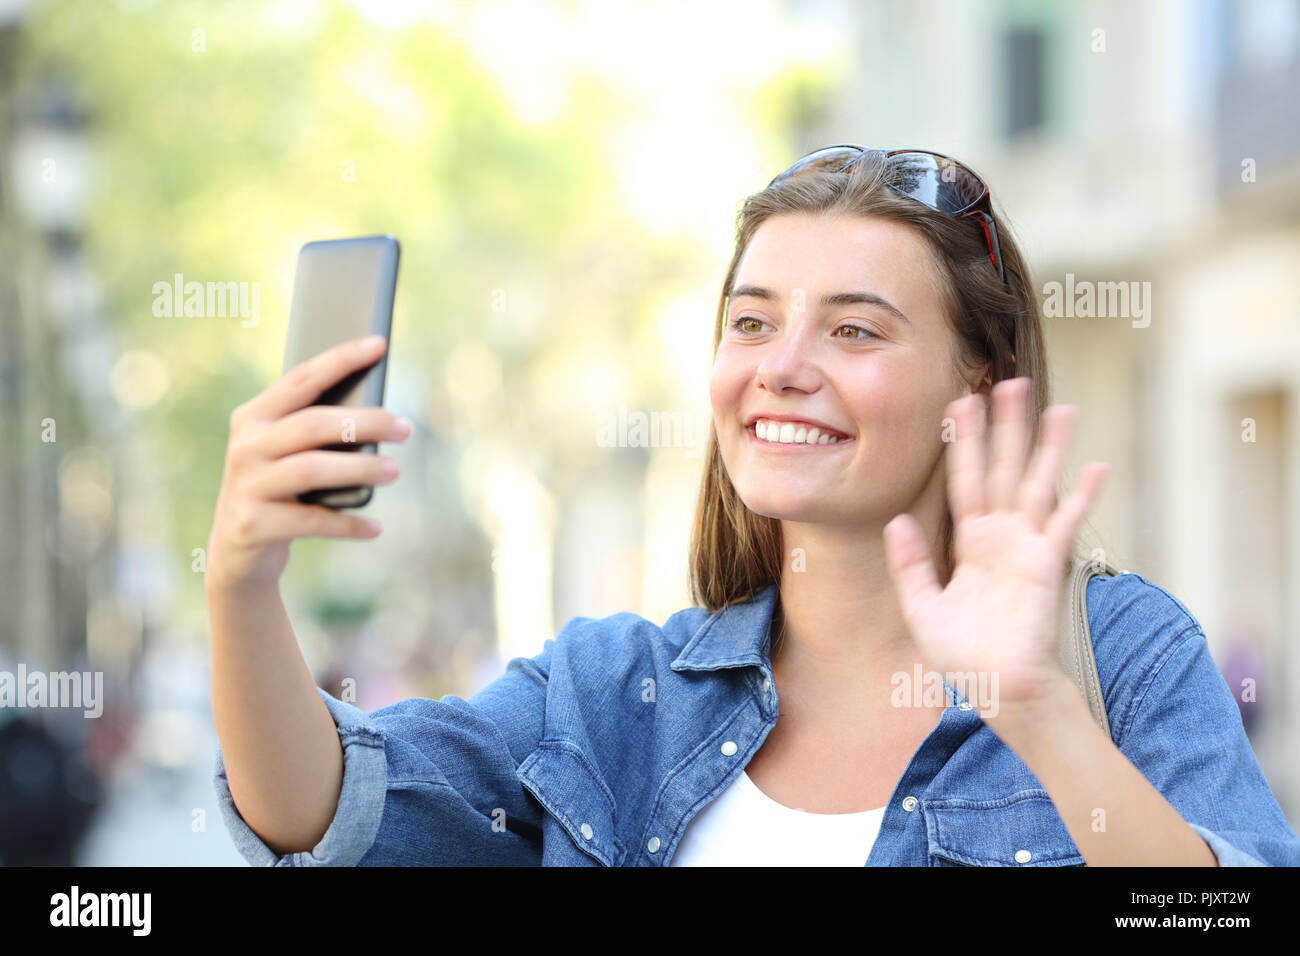 Happy girl waving hand greeting during a phone video call in the happy girl waving hand greeting during a phone video call in the street m4hsunfo